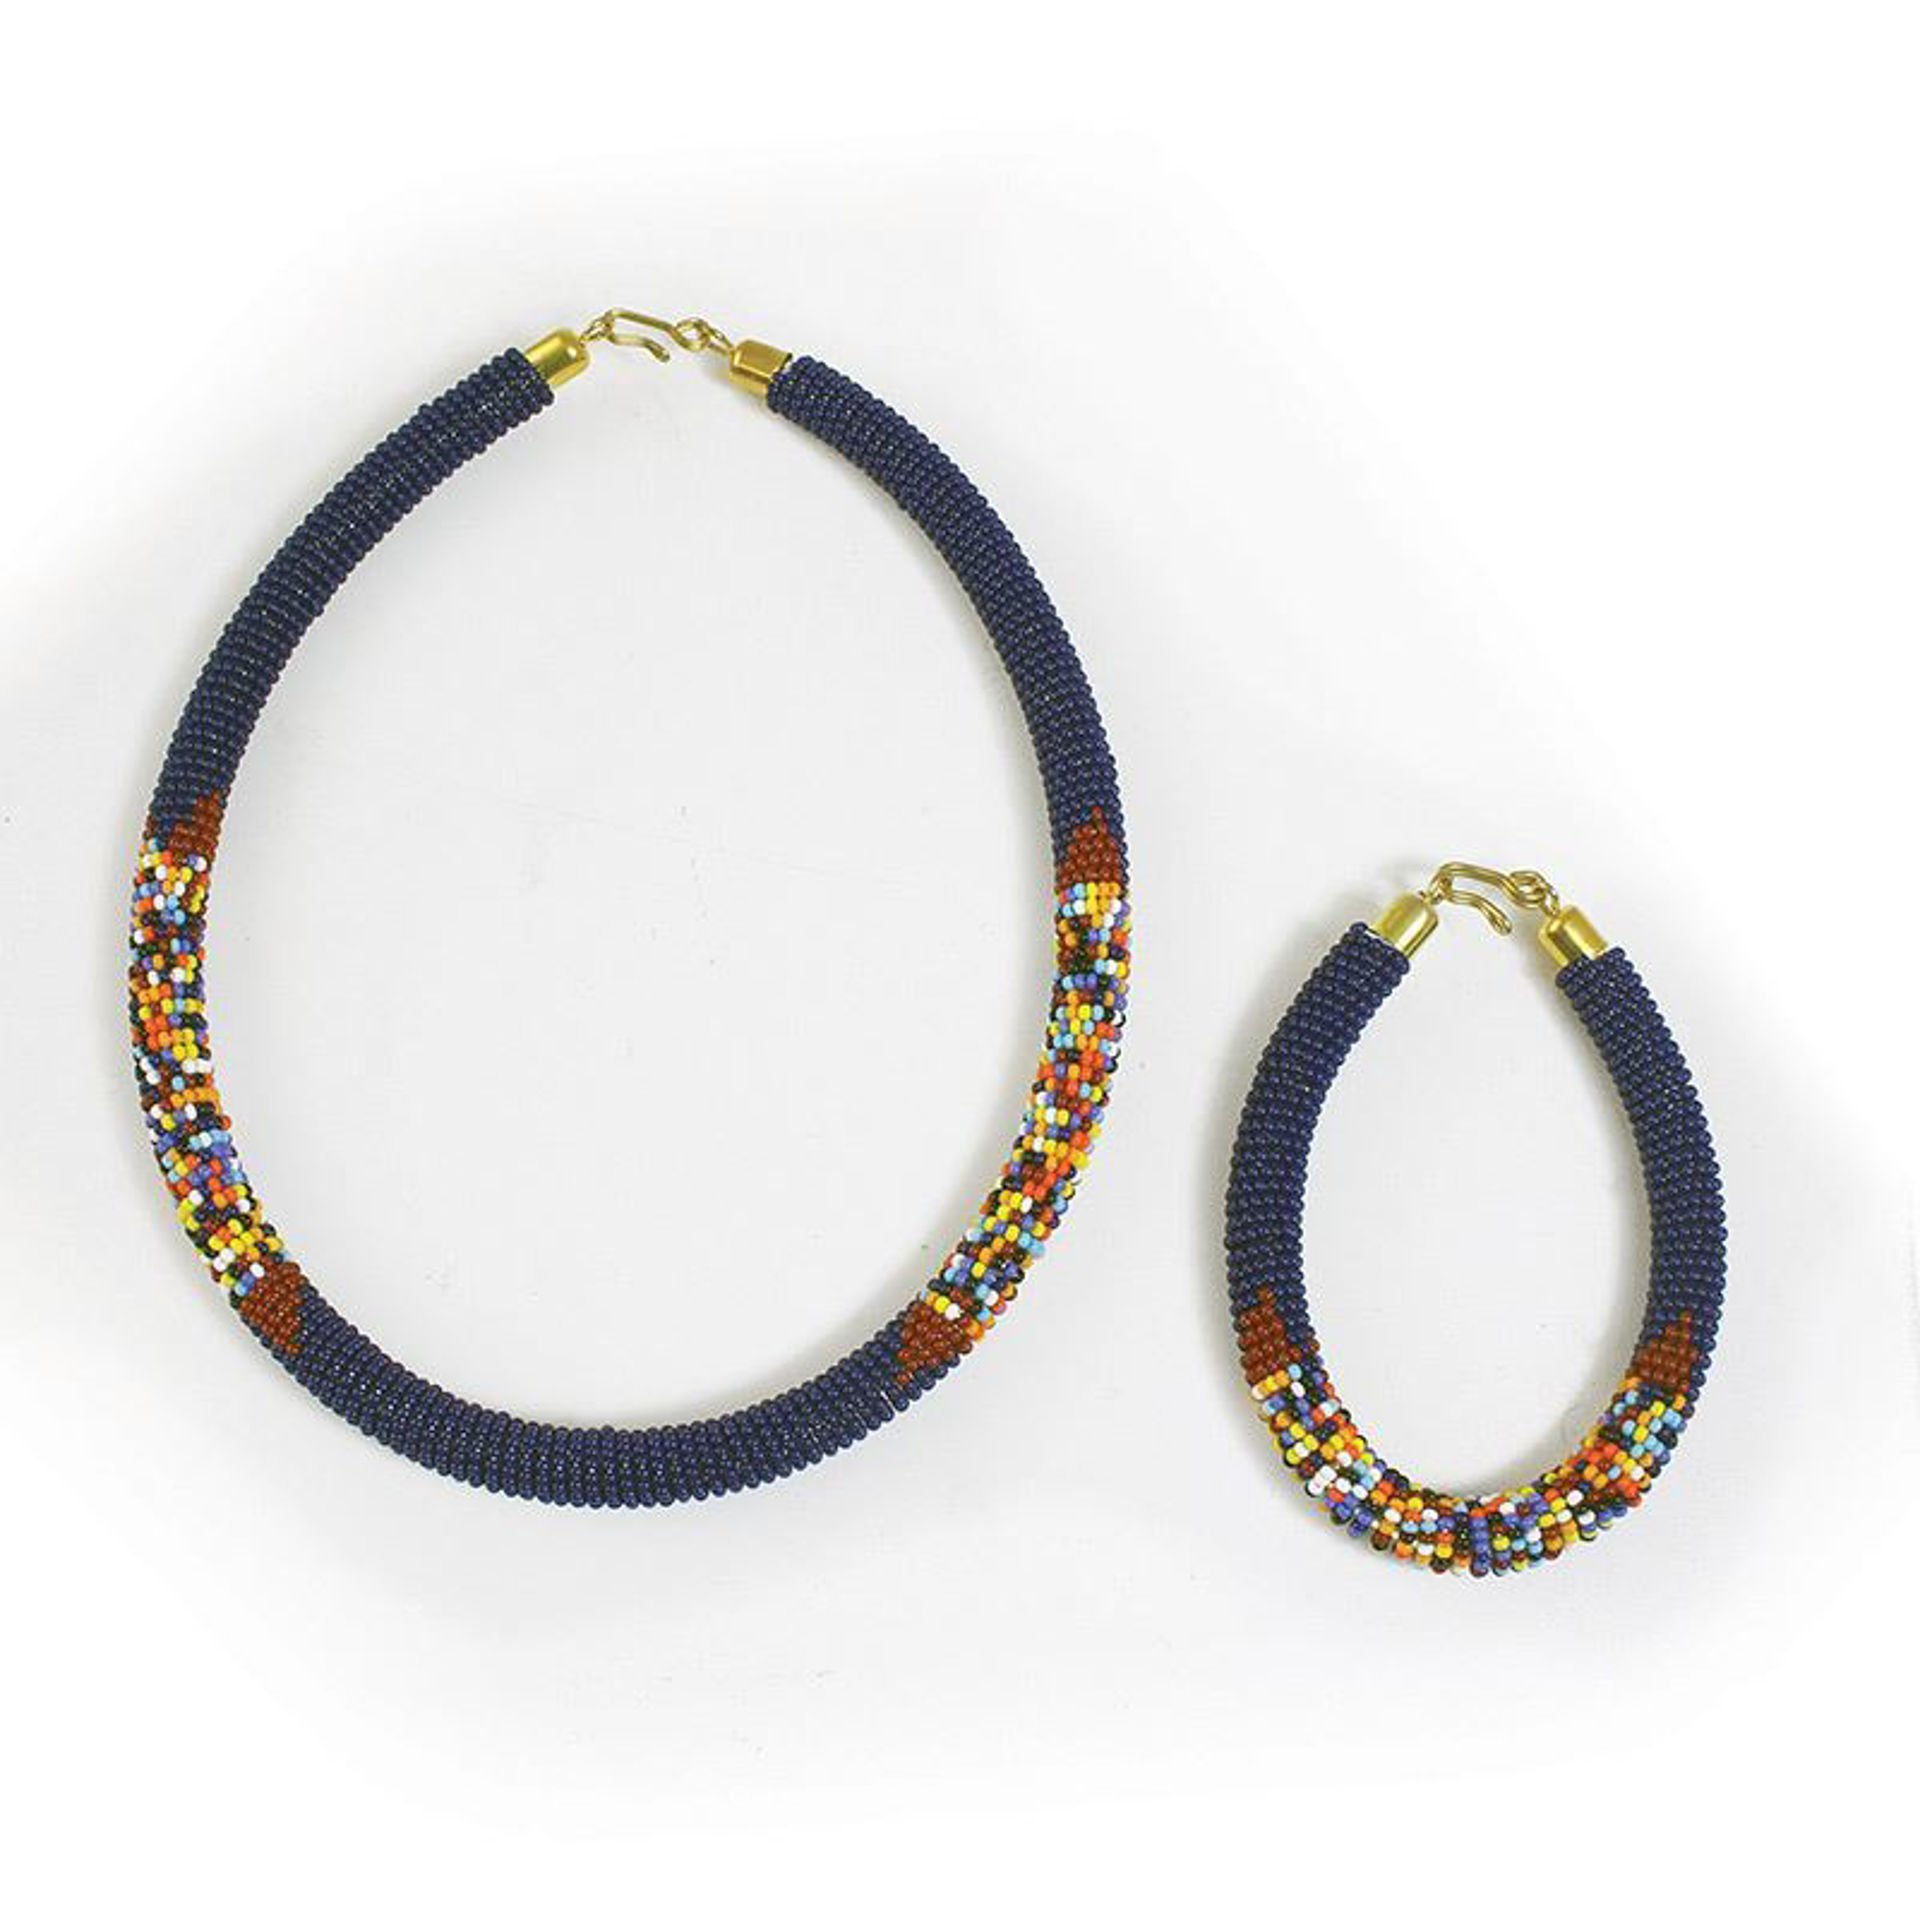 Picture of Beaded Maasai Jewelry Set: Navy